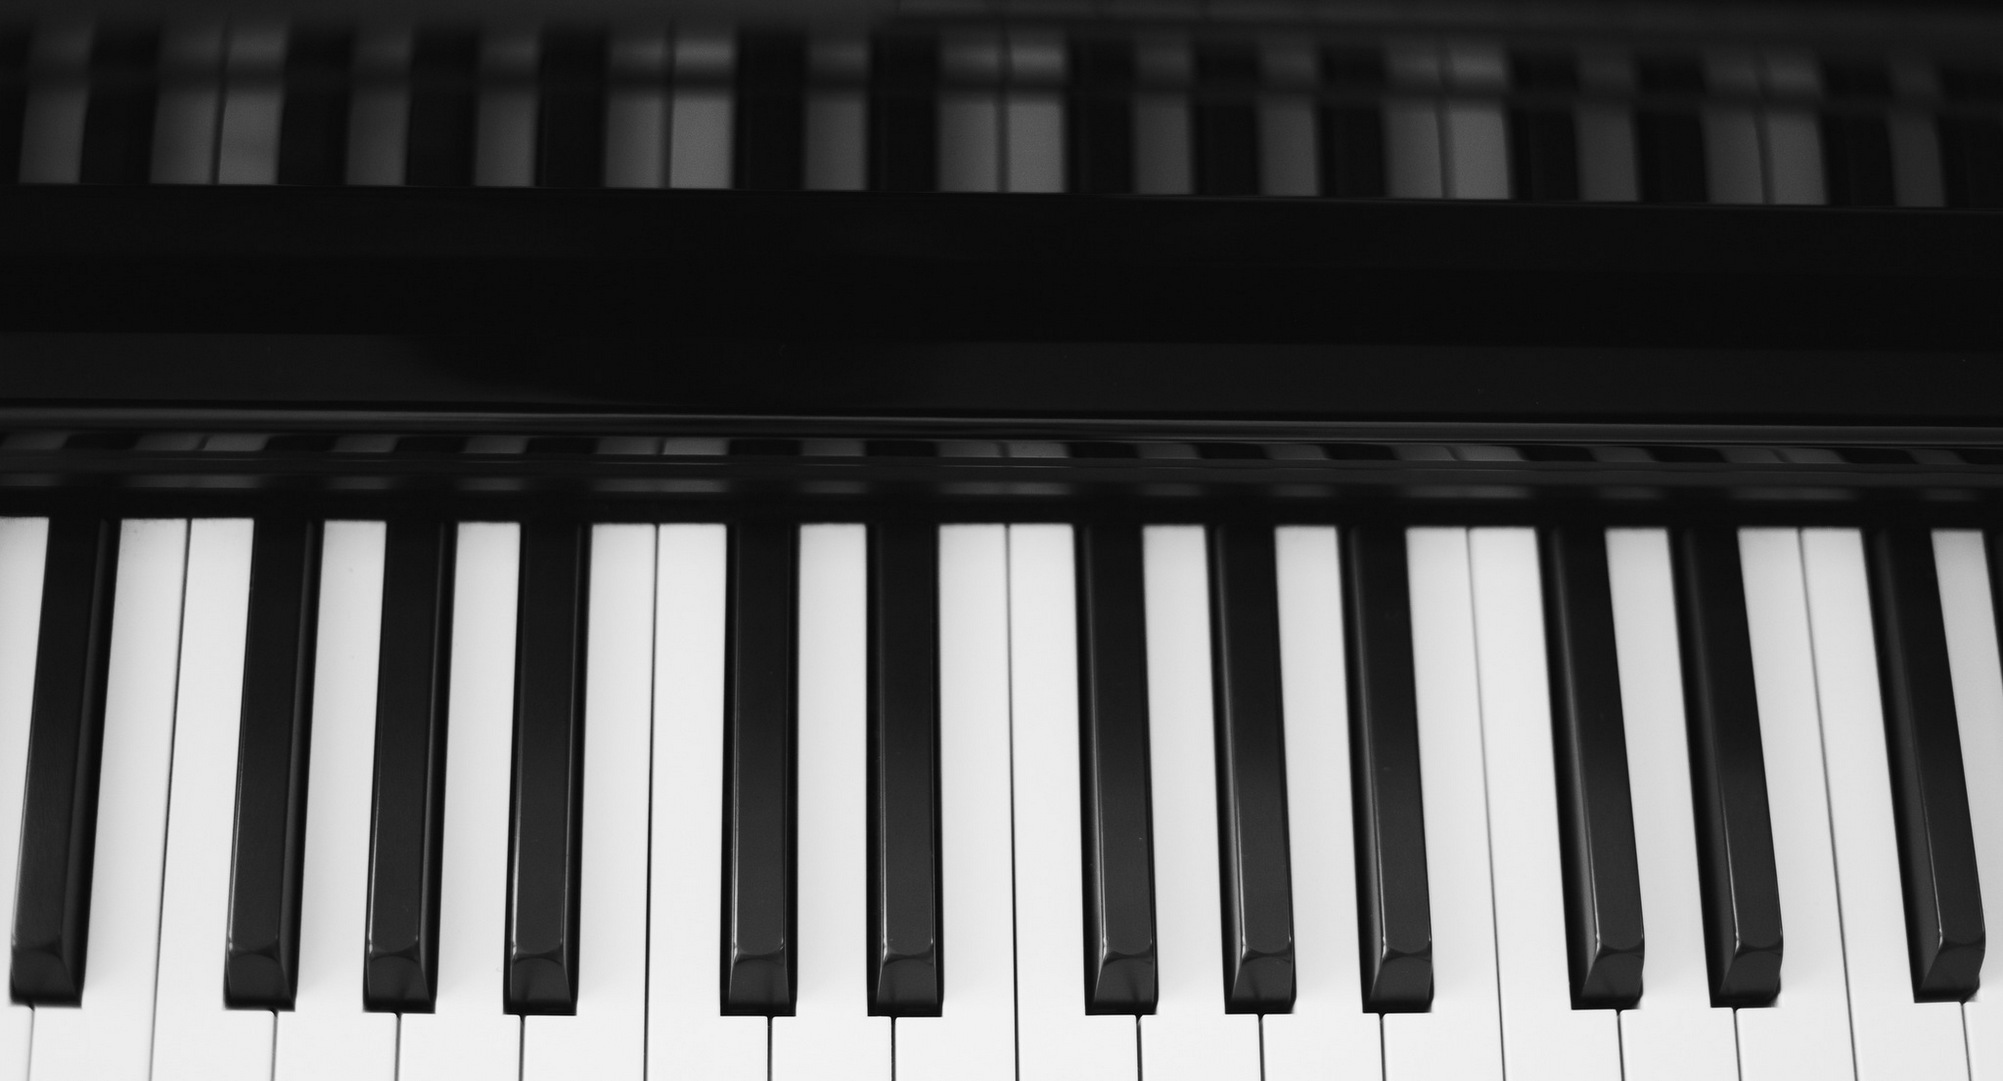 piano keyboard (black and white)